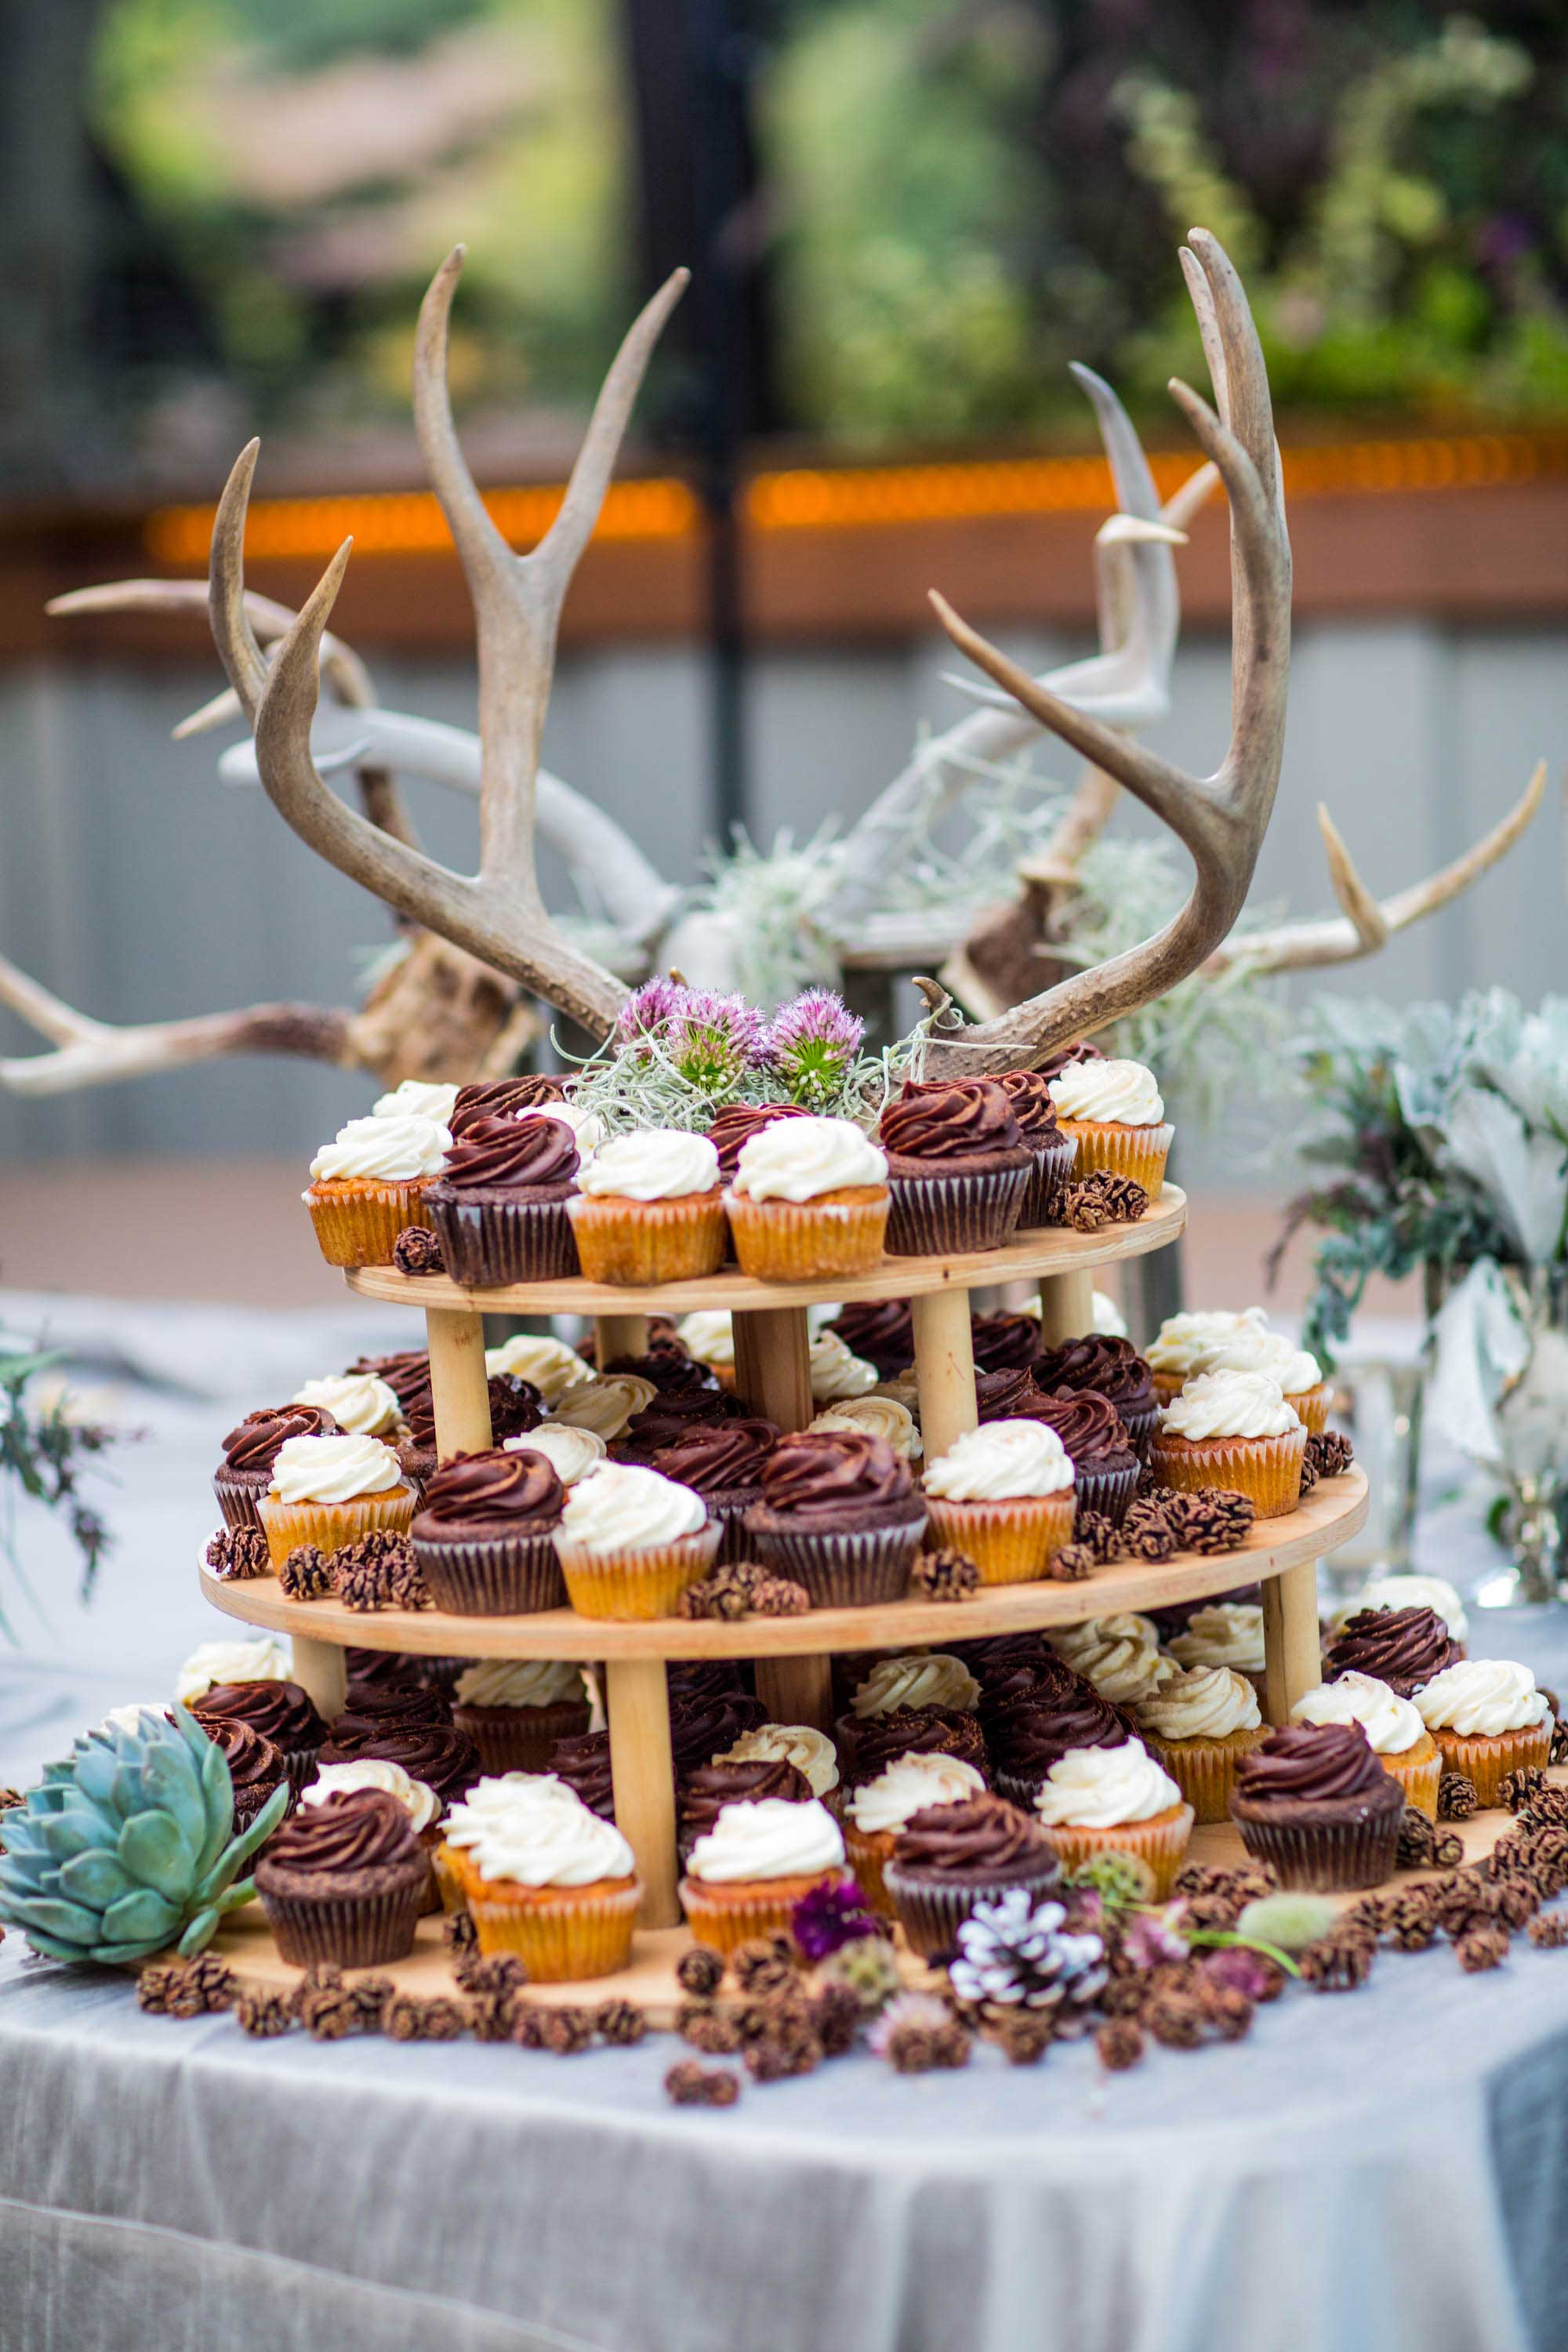 5 Dreamy Dessert Tables For Your Wedding Reception Inside Weddings